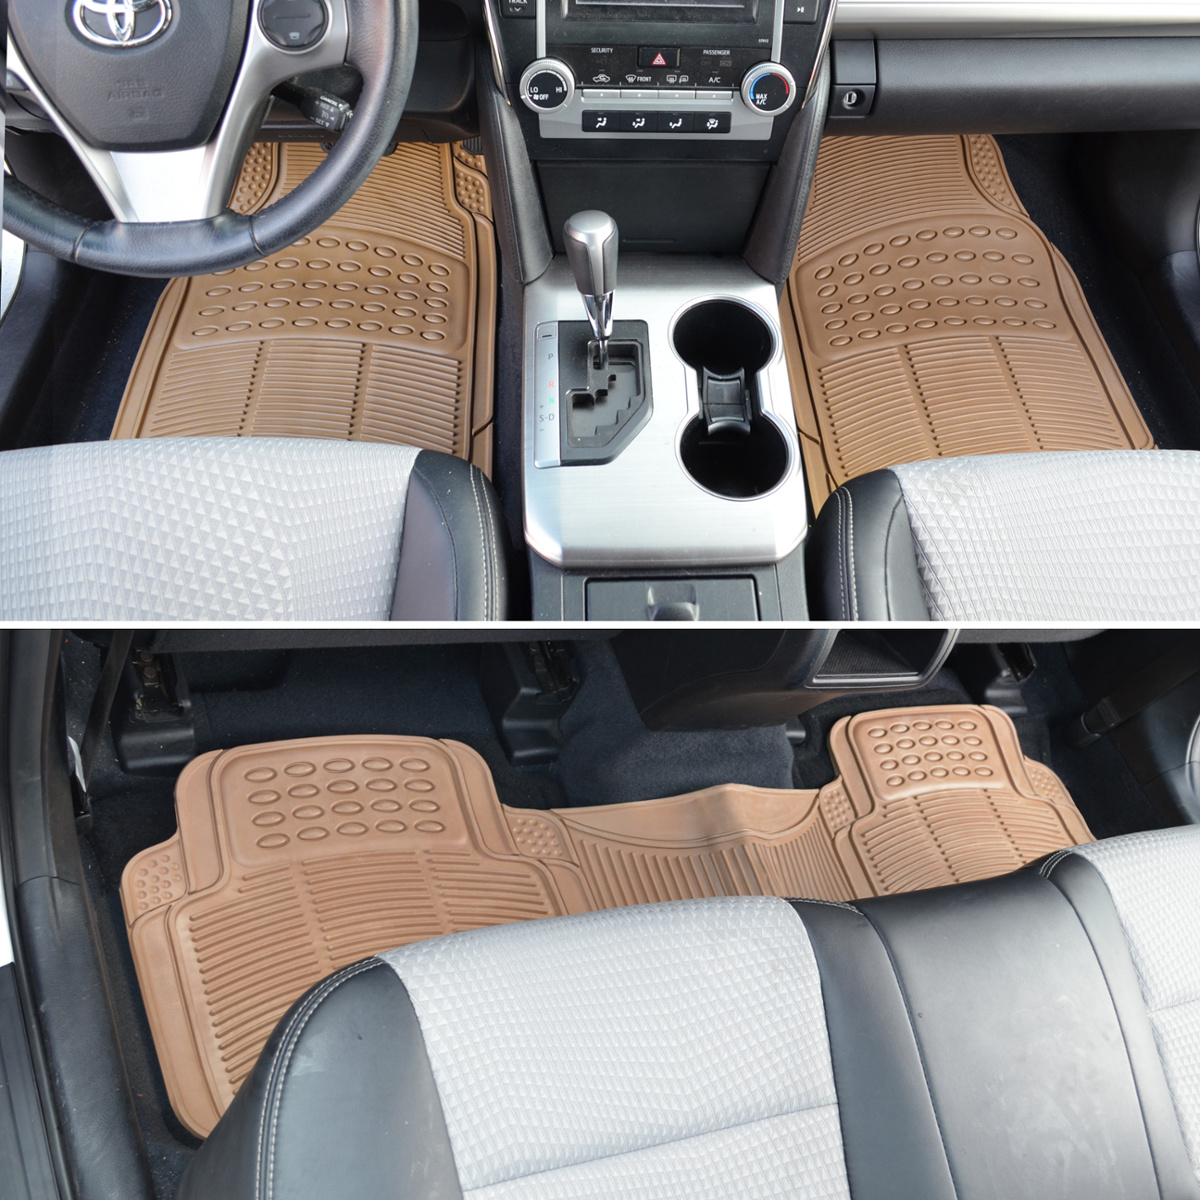 Rubber mats car - Car Floor Mats For All Weather Semi Custom Fit Heavy Duty Trimmable Beige 3pc